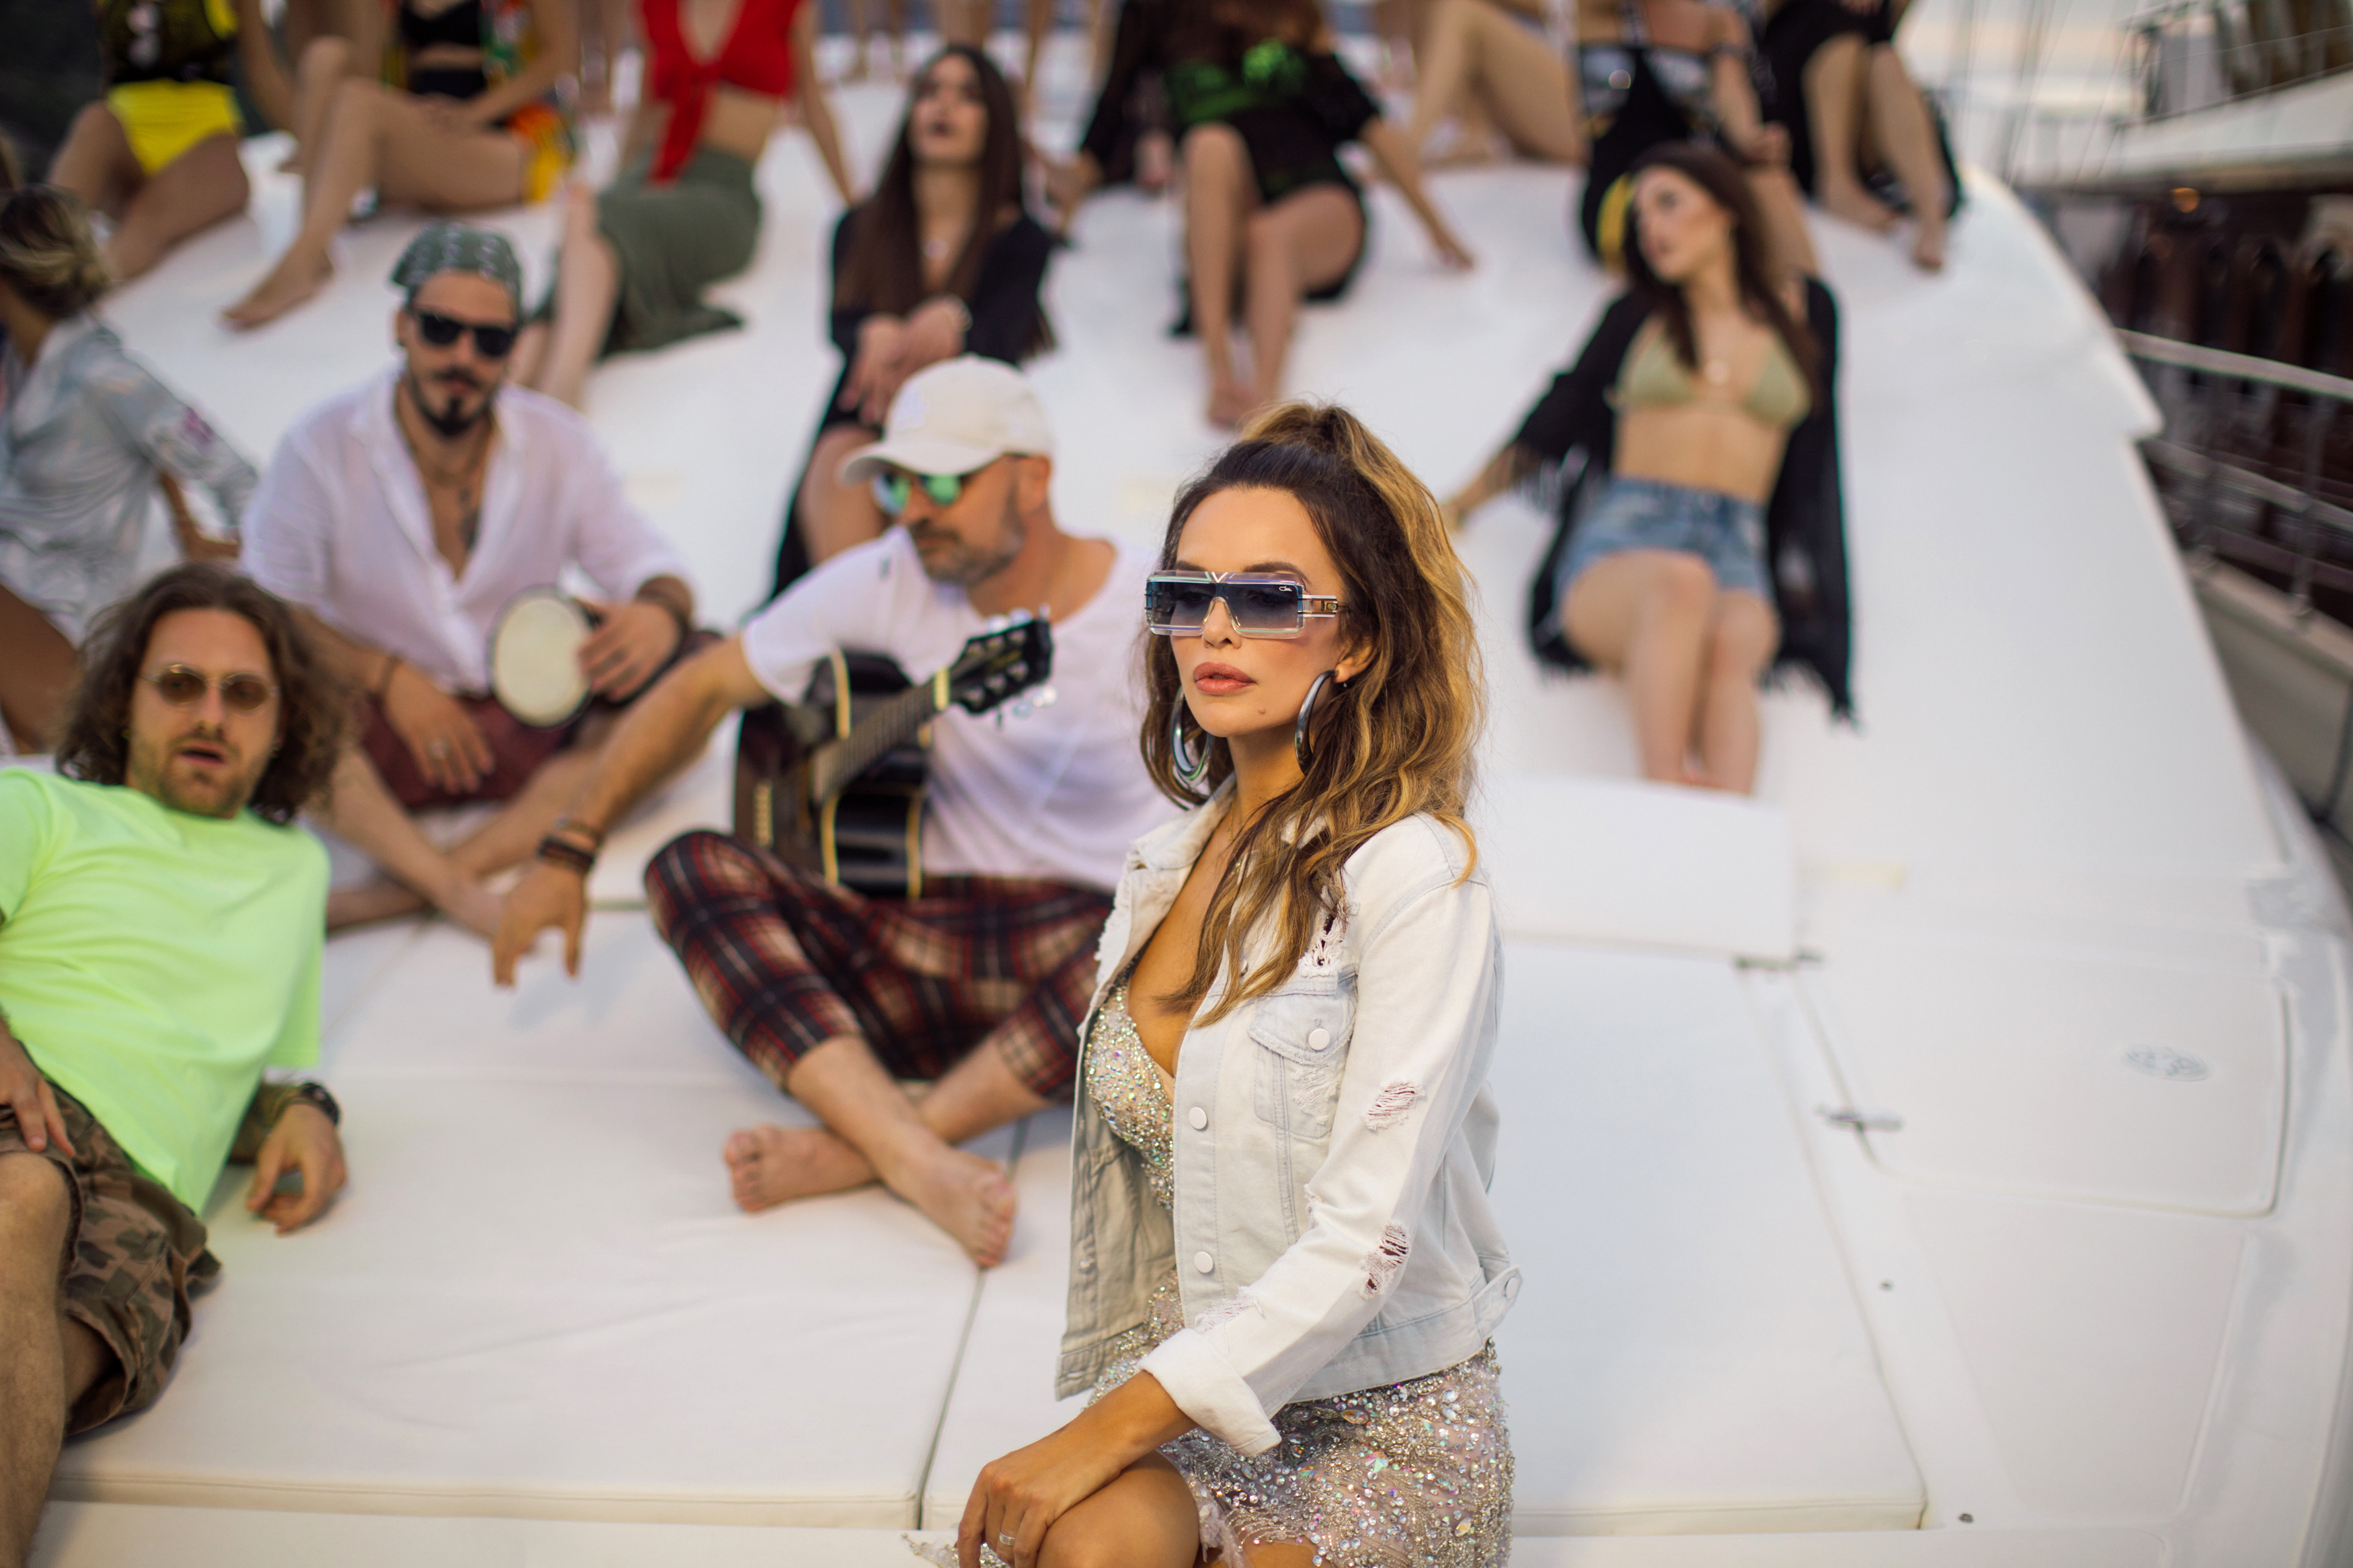 SEVERINA AND MILIGRAM PUBLISH THE VIDEOSPOT FOR THE NEW SINGL